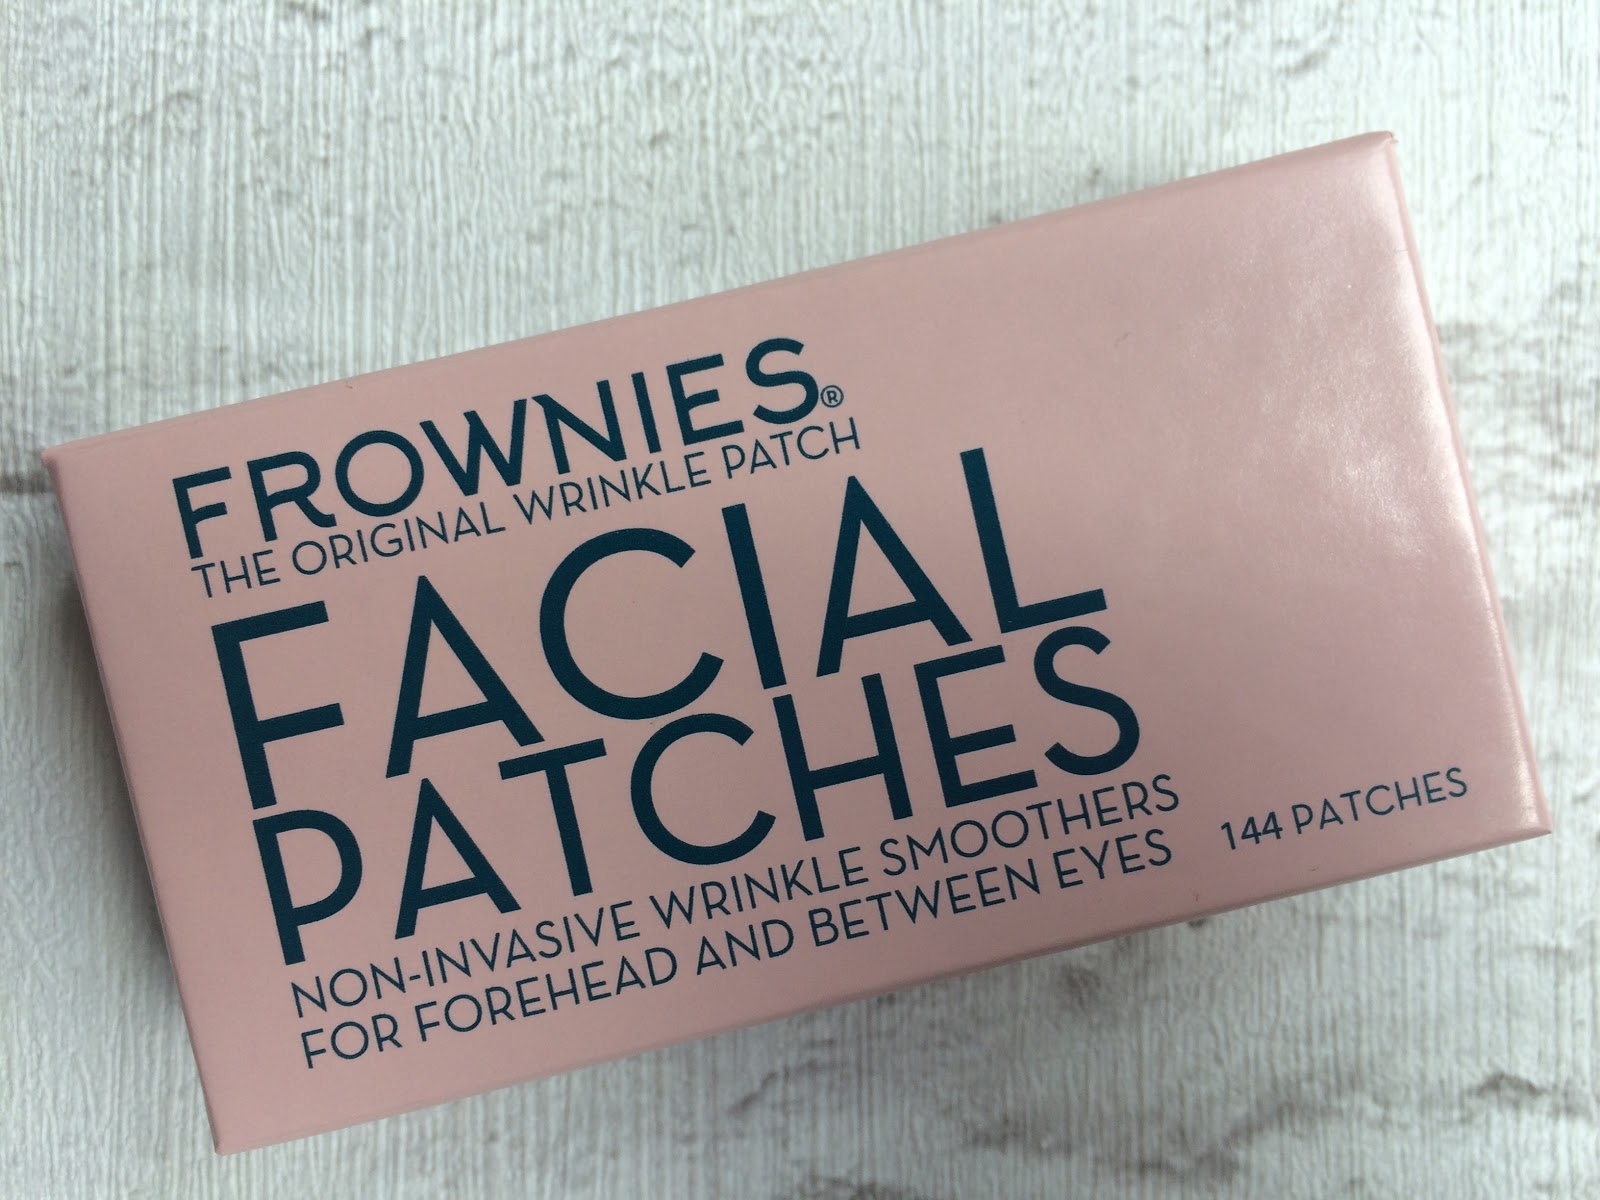 Frownies Facial patches, forehead and between the eyes